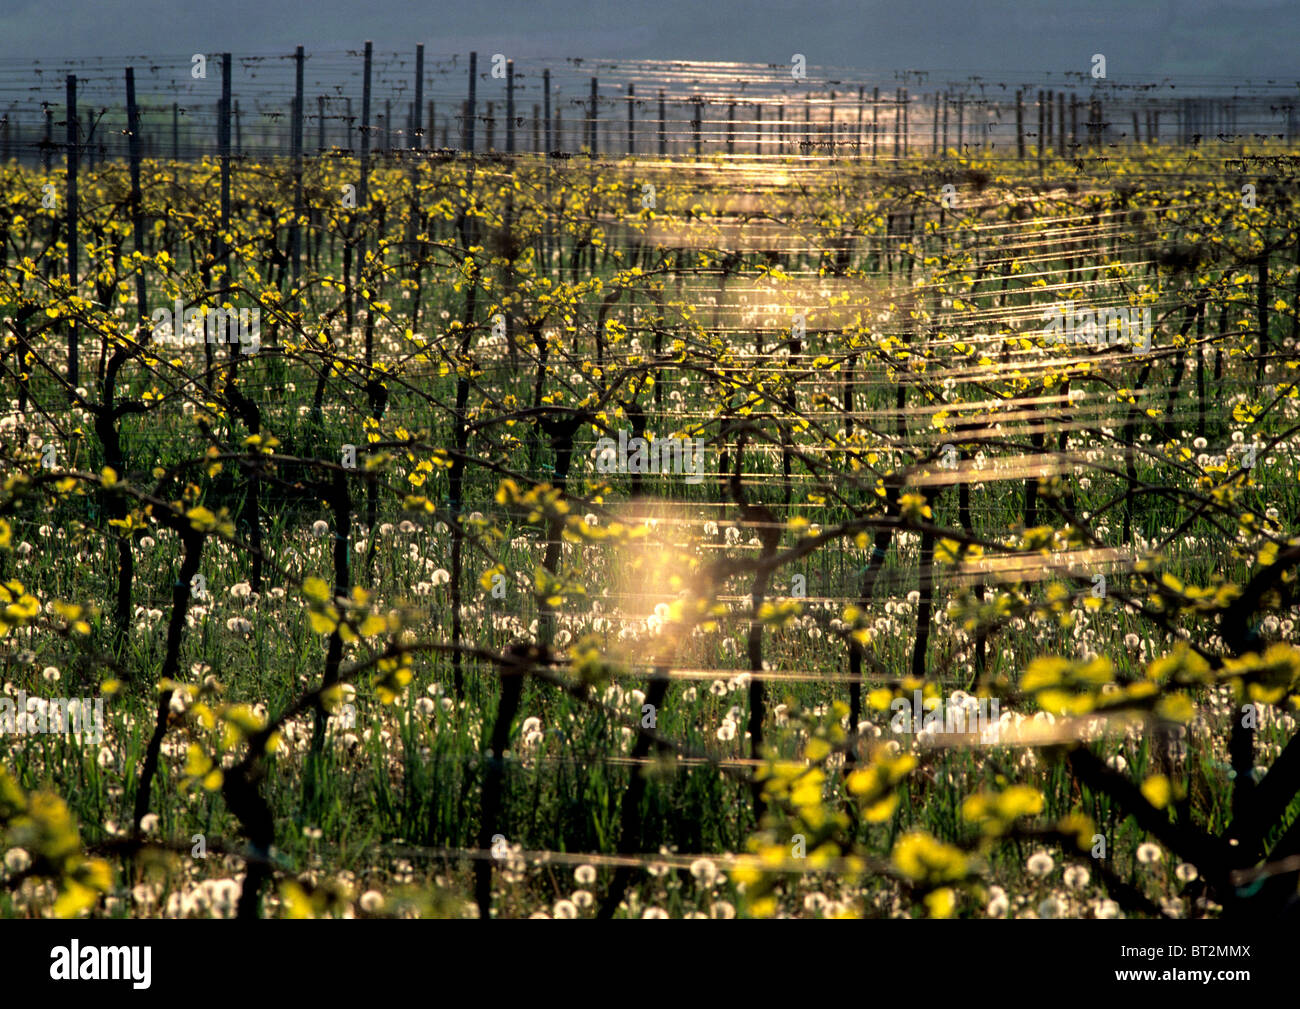 Field With Small Trees And Yellow Flowers Stock Photo 32022282 Alamy